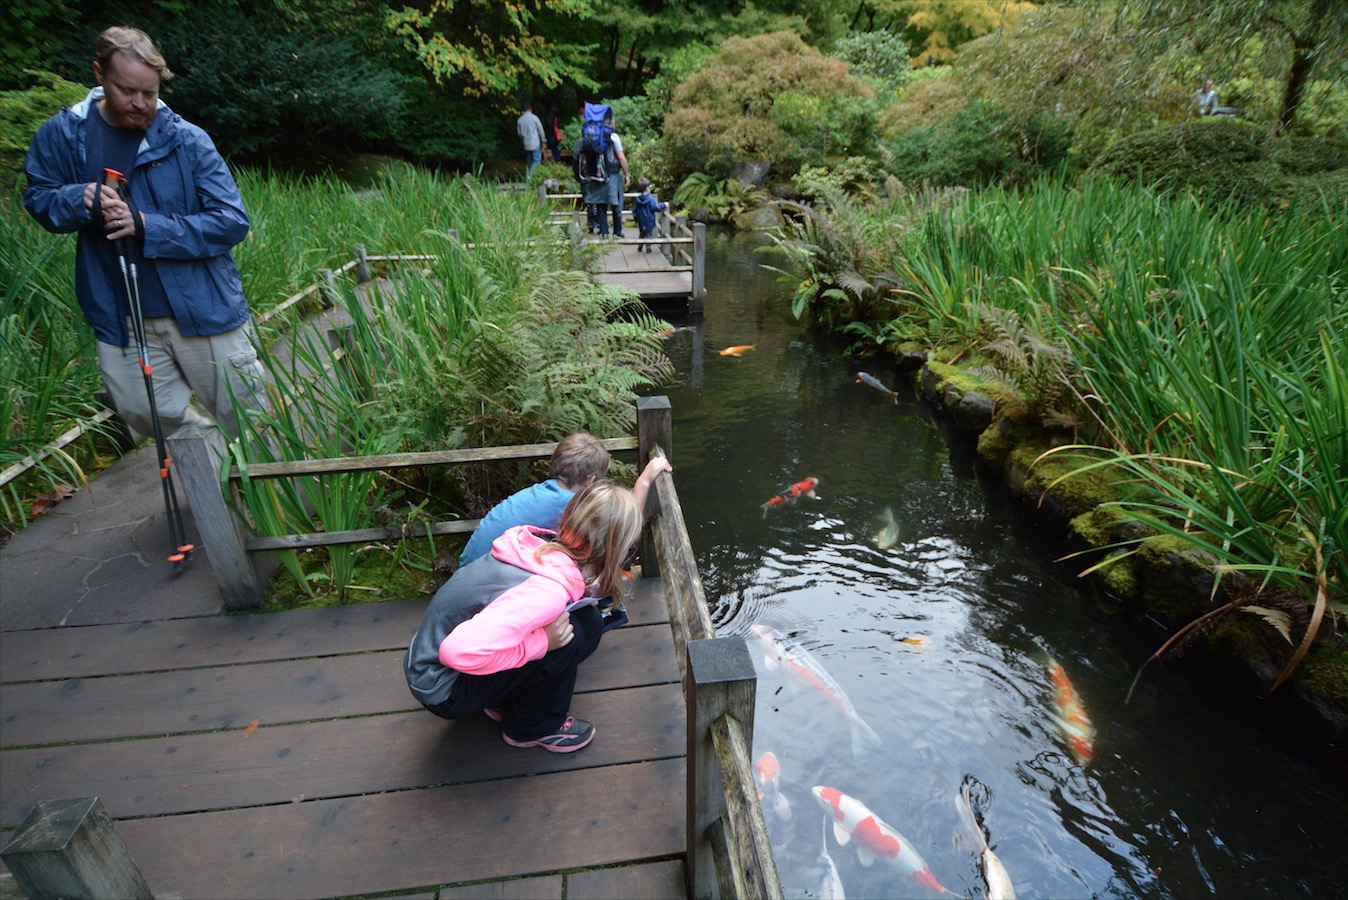 A family looks at koi fish in a koi pond in Portland Oregon